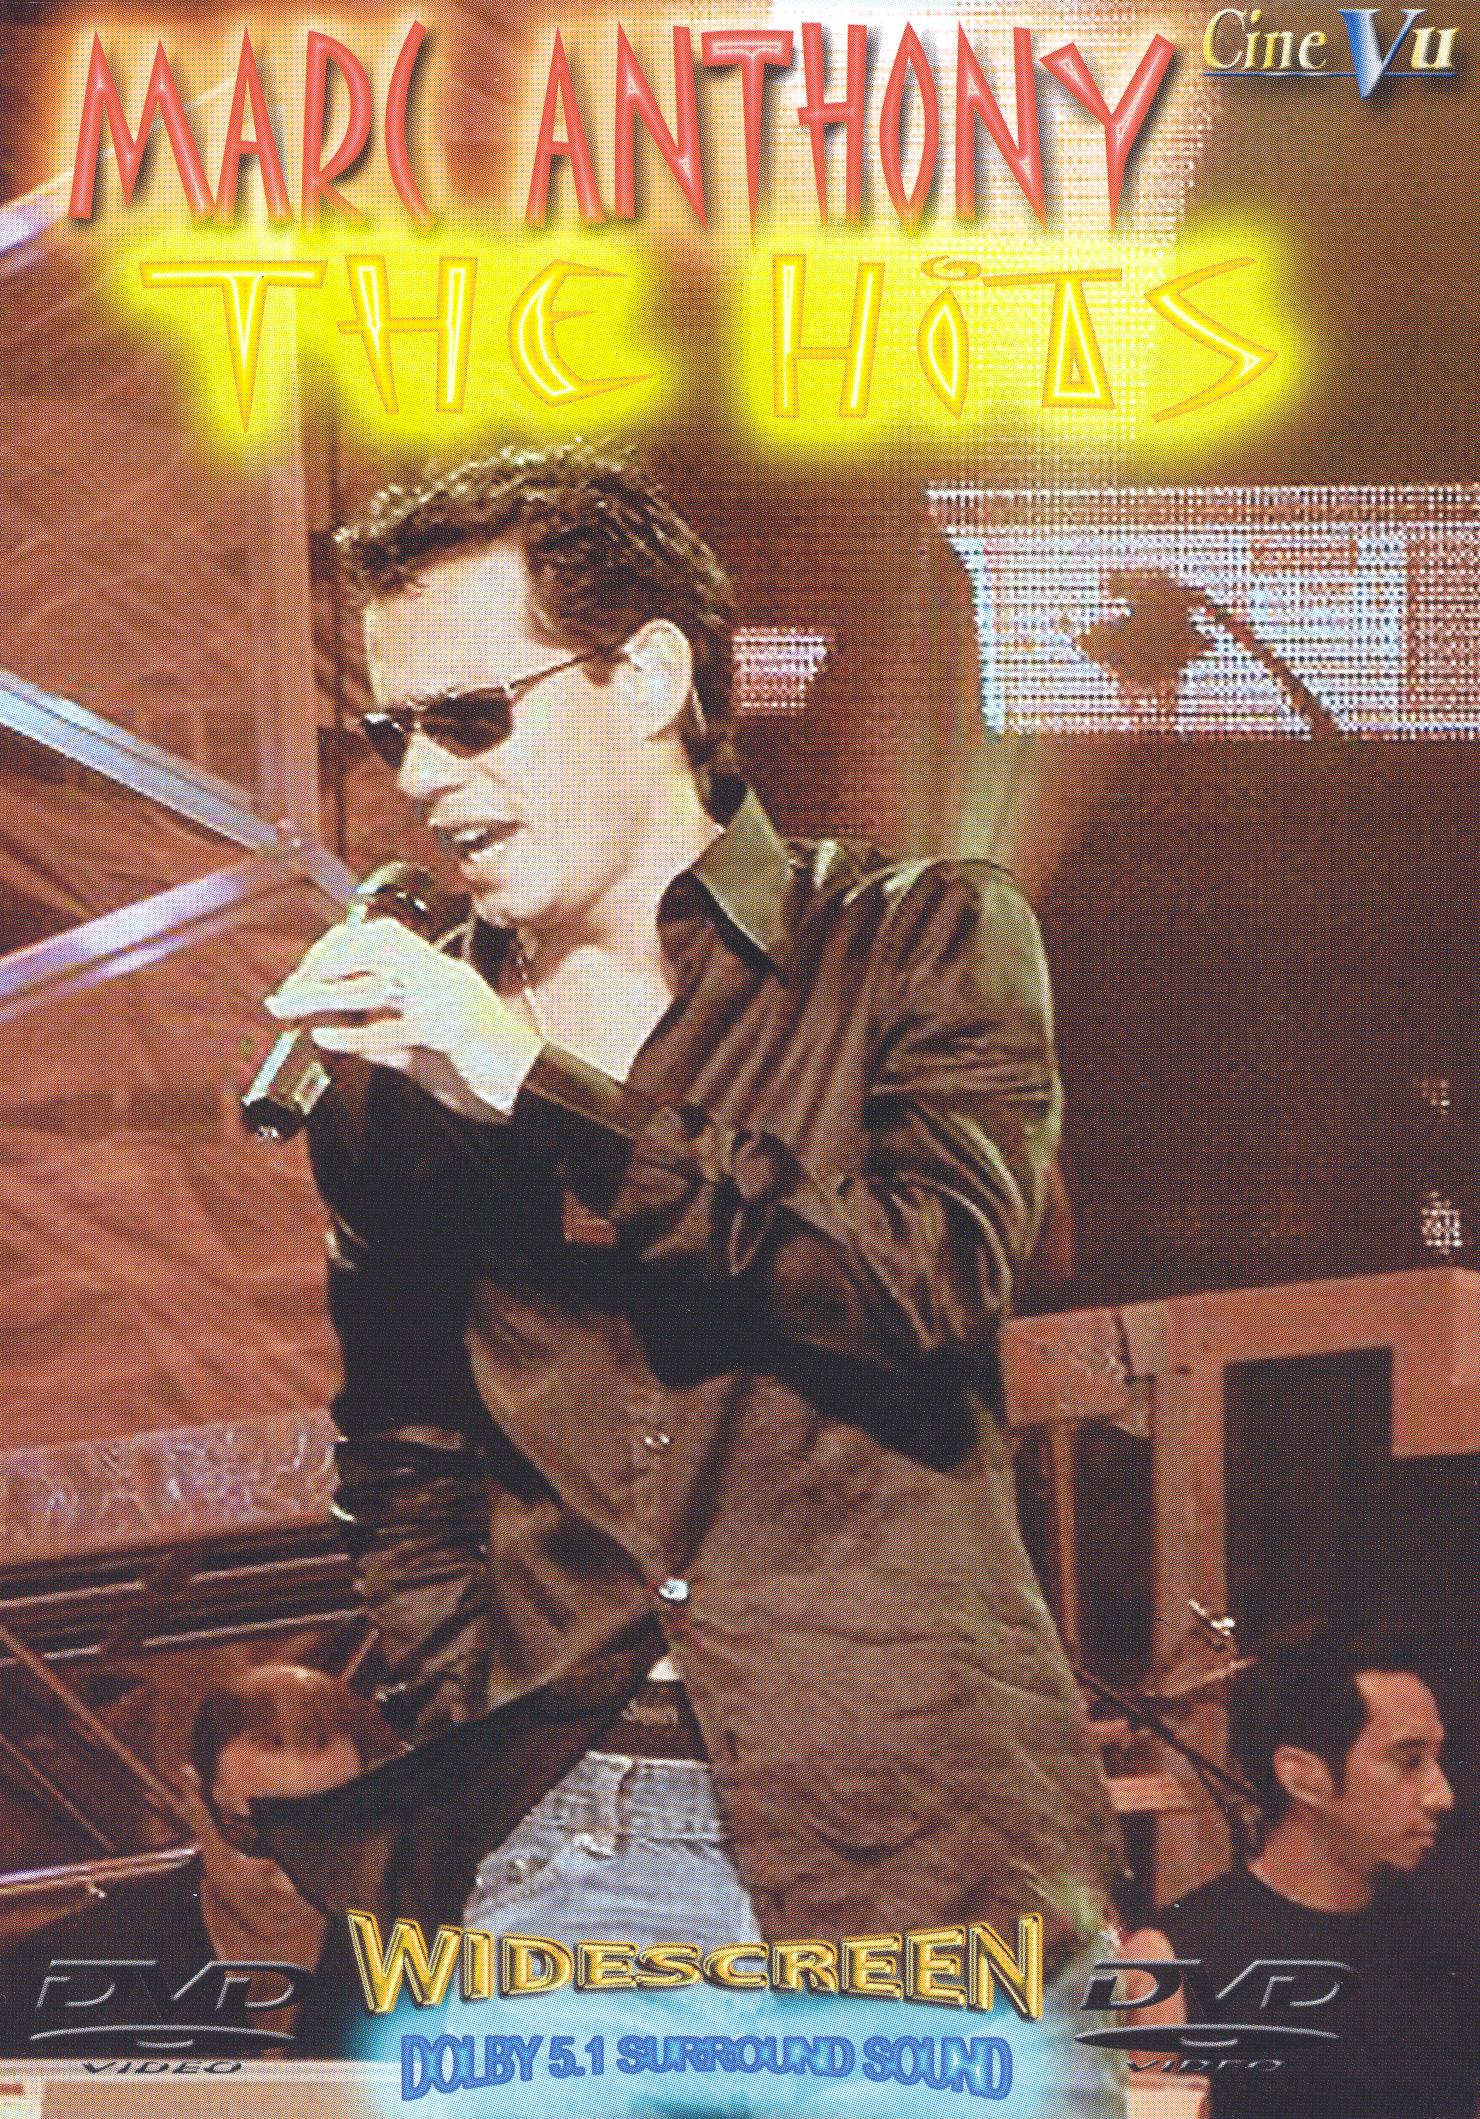 Marc Anthony: The Hits